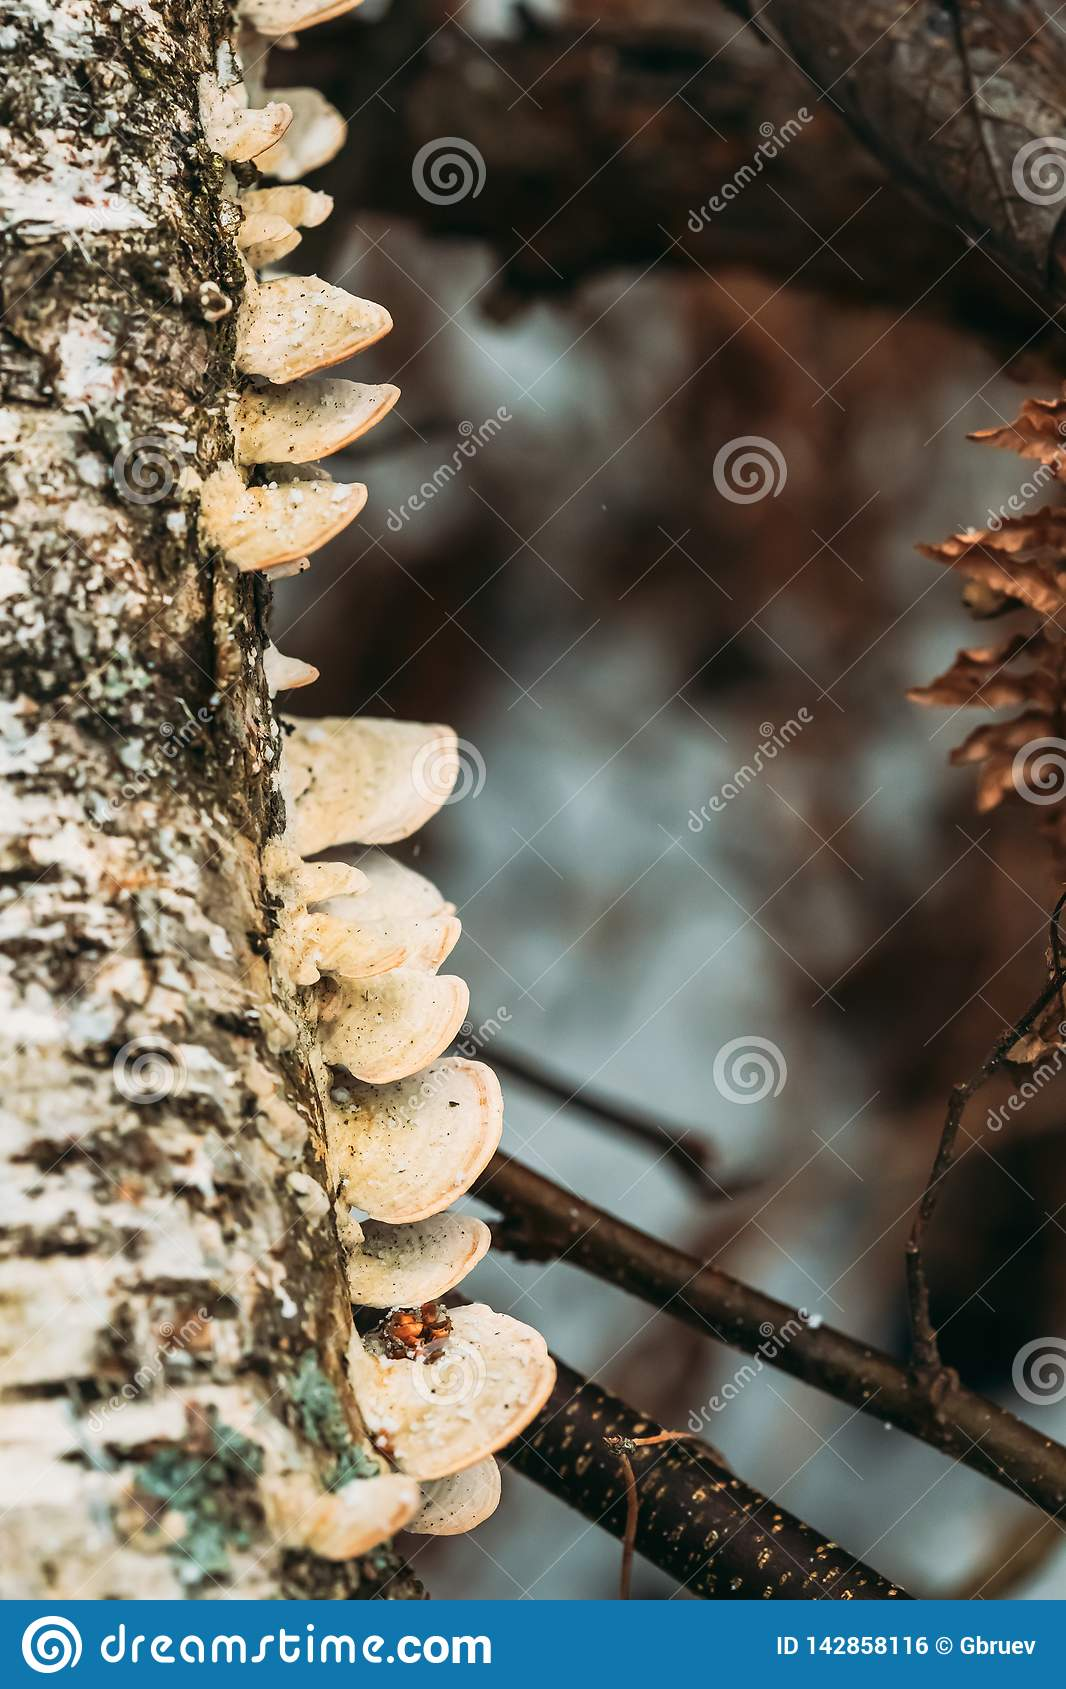 Belarus Polypore-Pilz auf Baum-Stamm in Autumn Rainy Day Klammer-Pilze und ihr Woody Fruiting Bodies Are Called